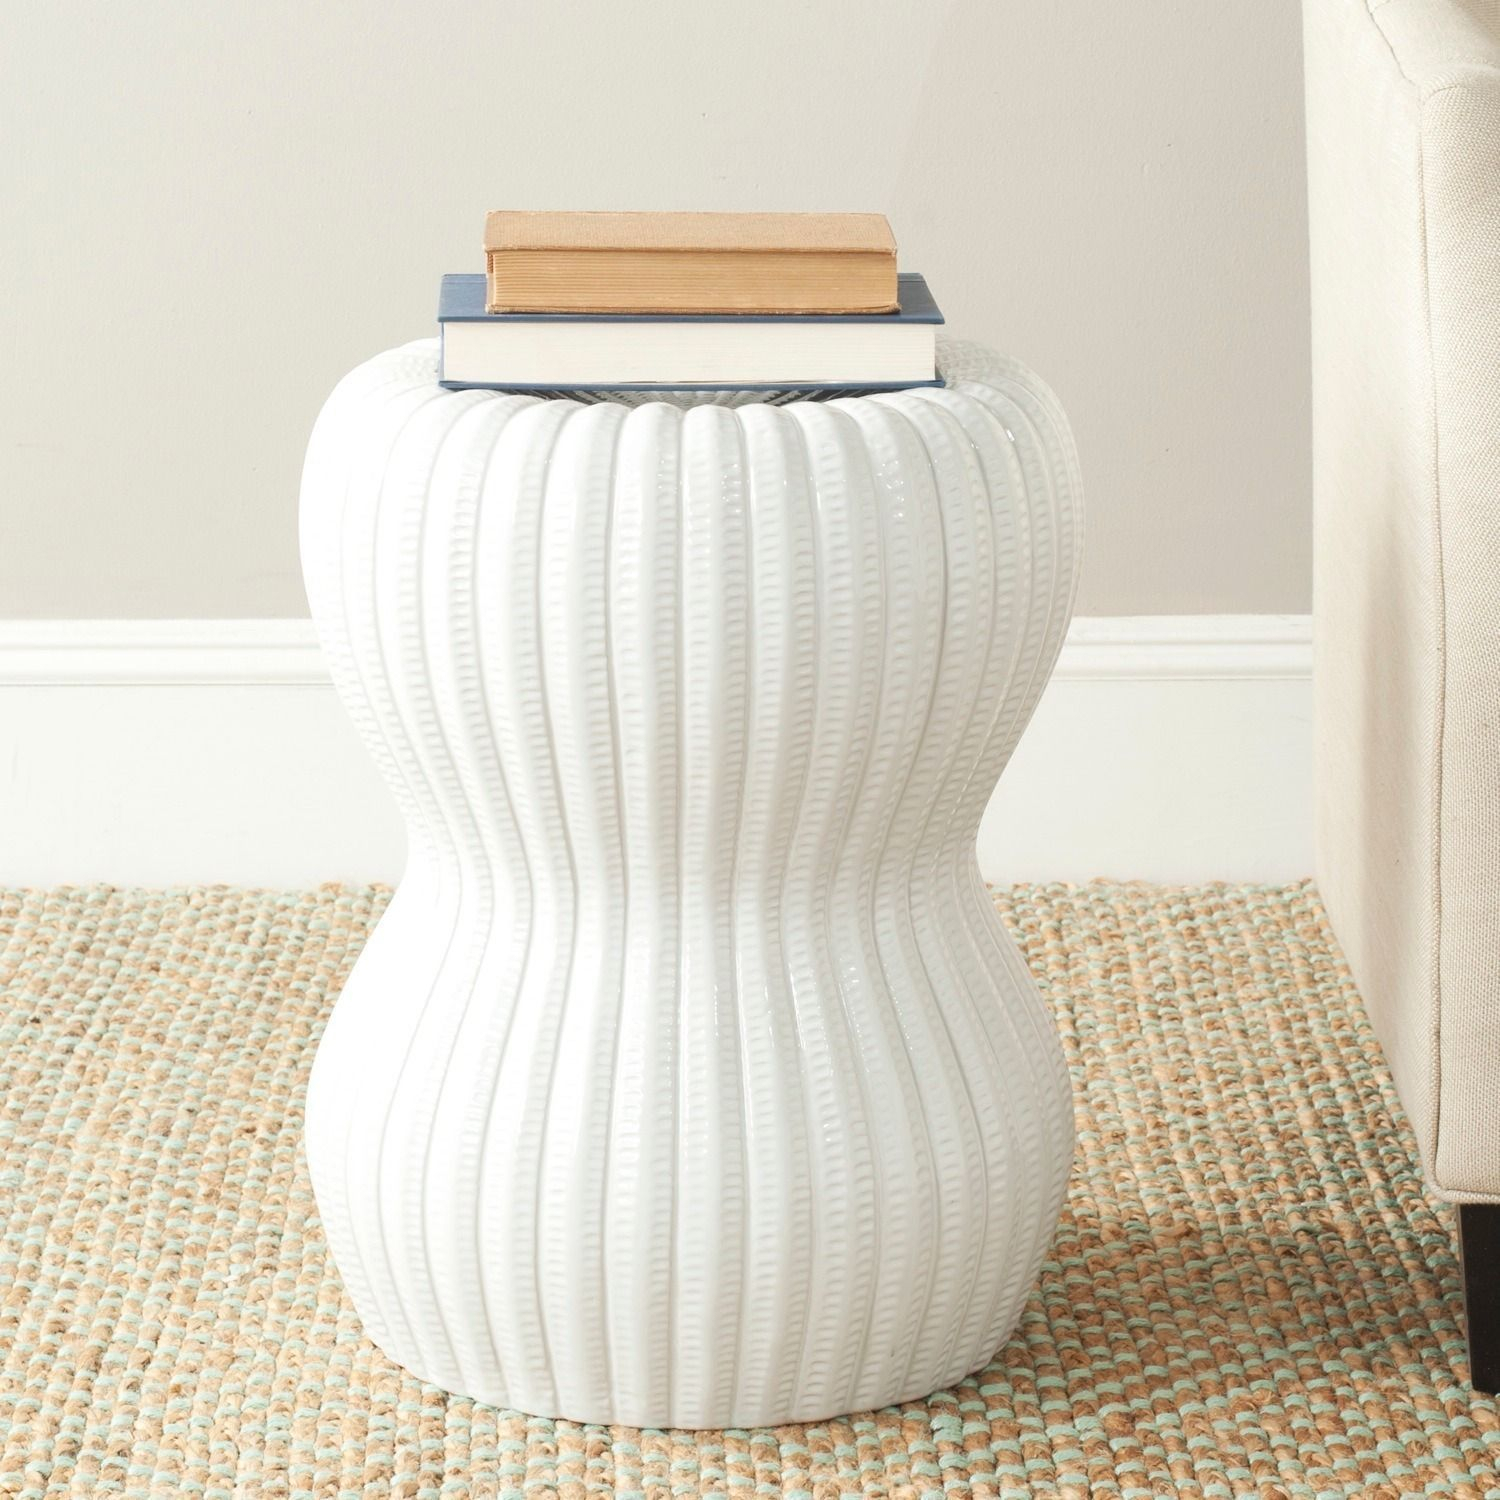 Safavieh Paradise Oval White Ceramic Decorative Garden Stool Within Karlov Ceramic Garden Stools (View 10 of 25)